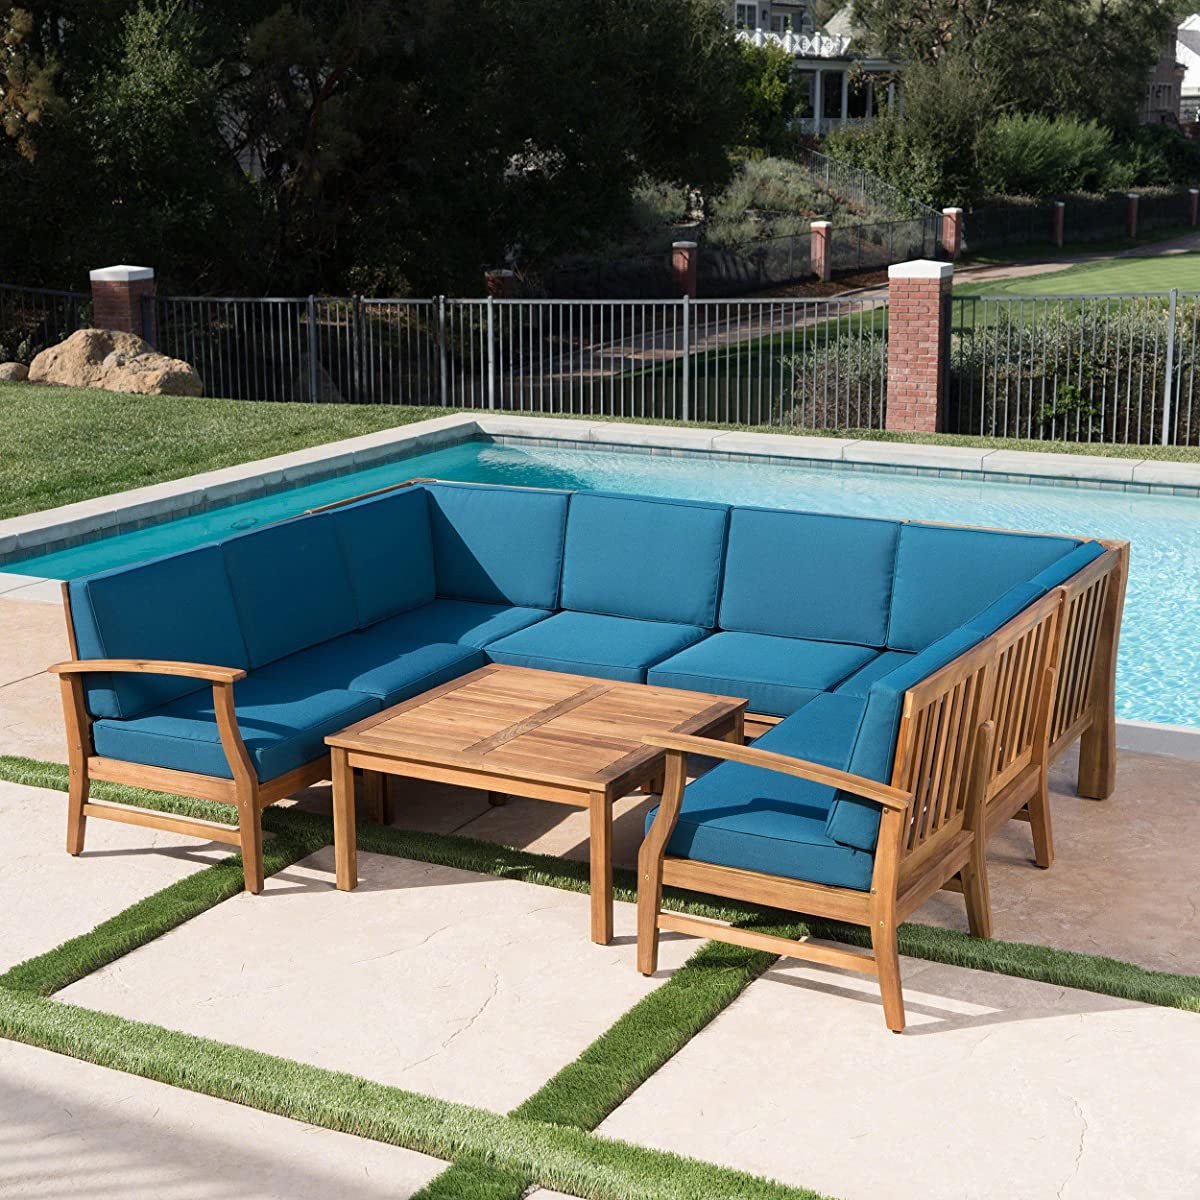 Lorelei Outdoor 8 Seater Teak Finished Acacia Wood Sectional Sofa and Table Set with Blue Water Resistant Cushions